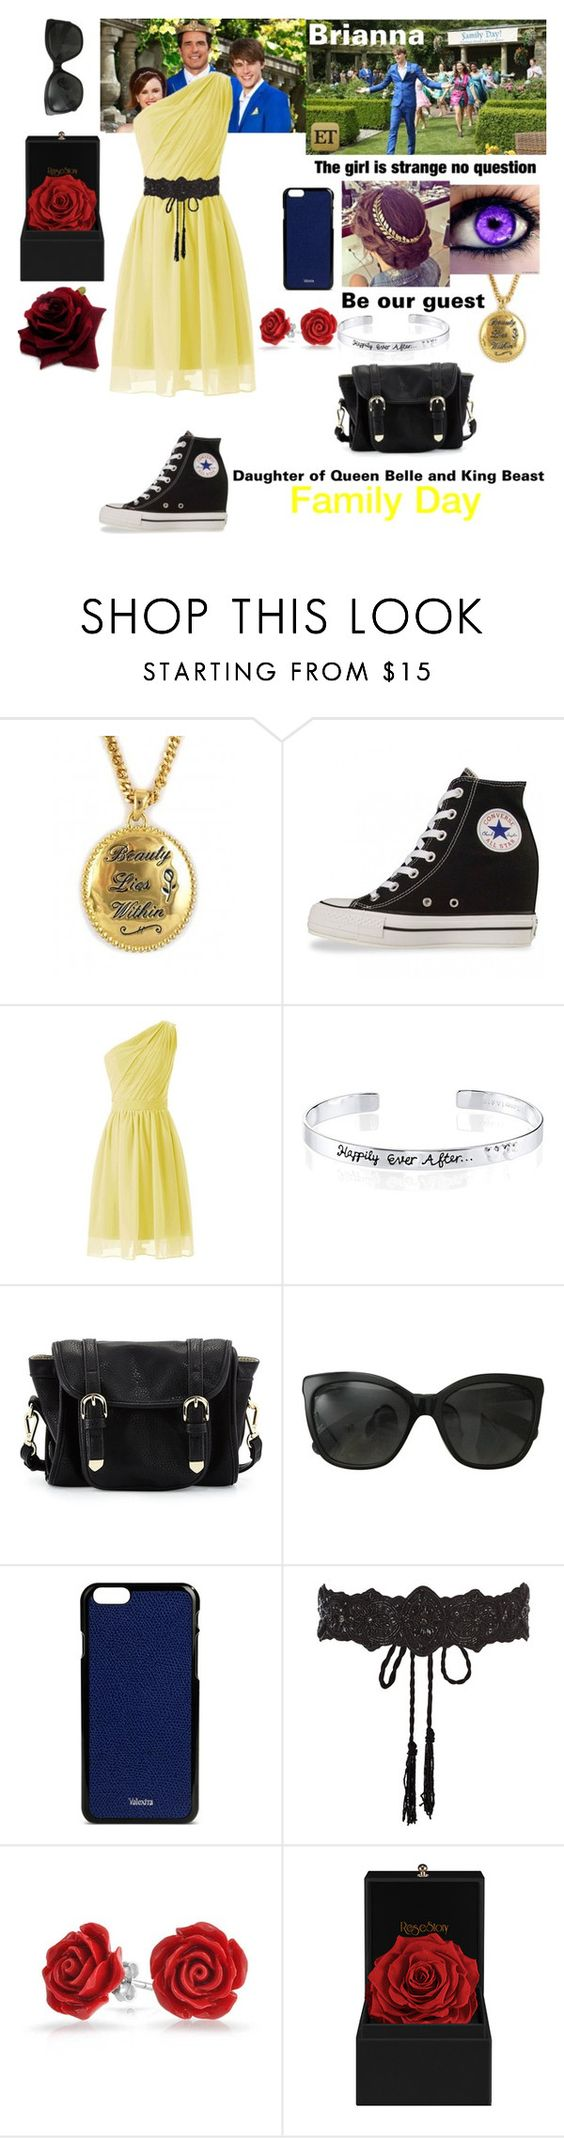 """""""Family Day-True Descendants"""" by kittywes ❤ liked on Polyvore featuring Disney Couture, Disney, Converse, Poverty Flats, Chanel, Valextra, Accessorize and Bling Jewelry"""